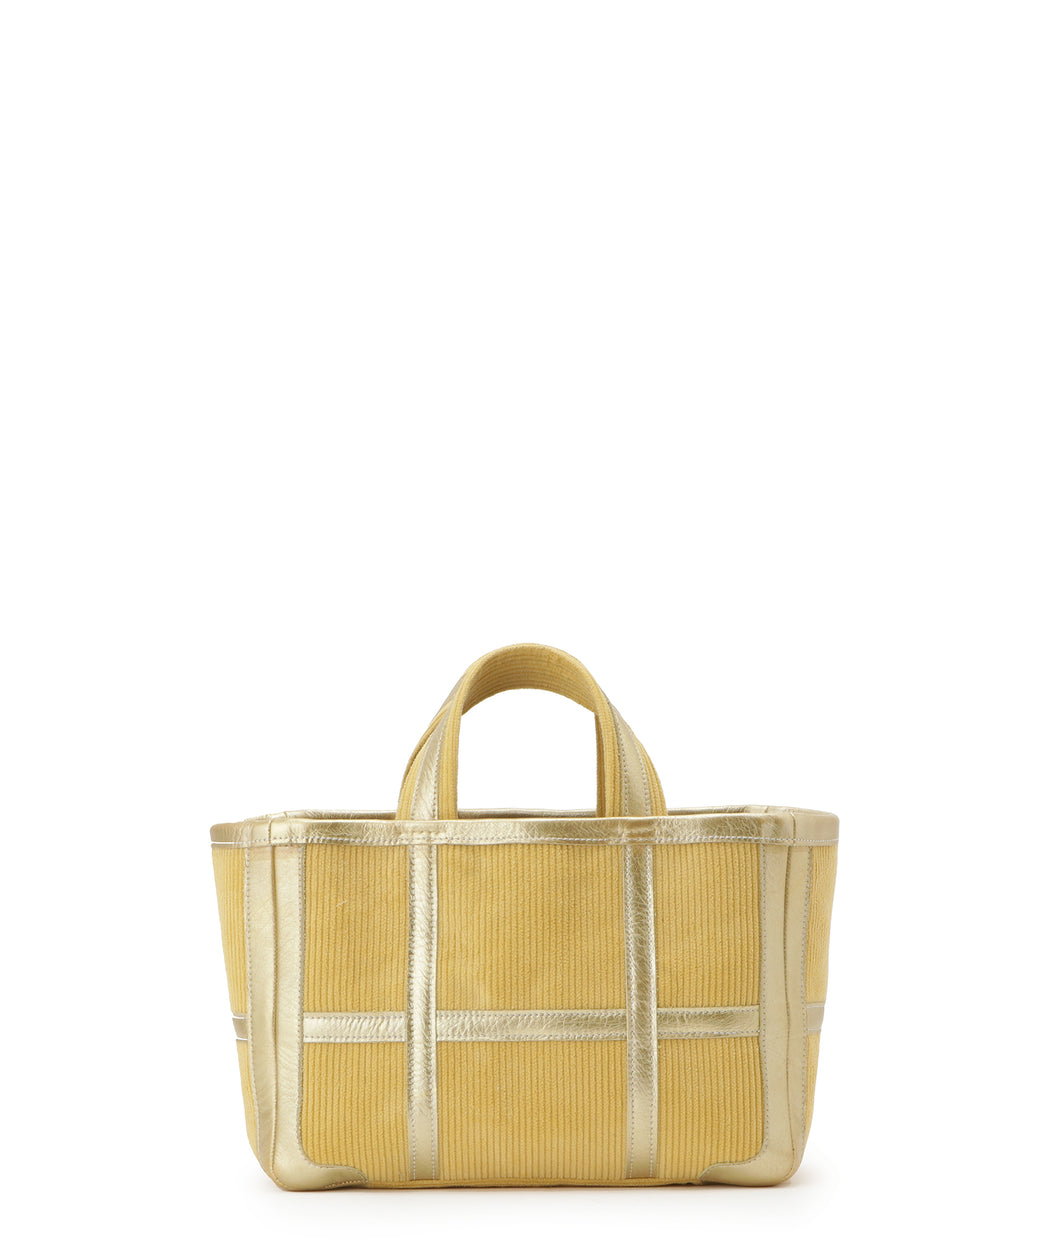 Small leather-trimmed corduroy tote